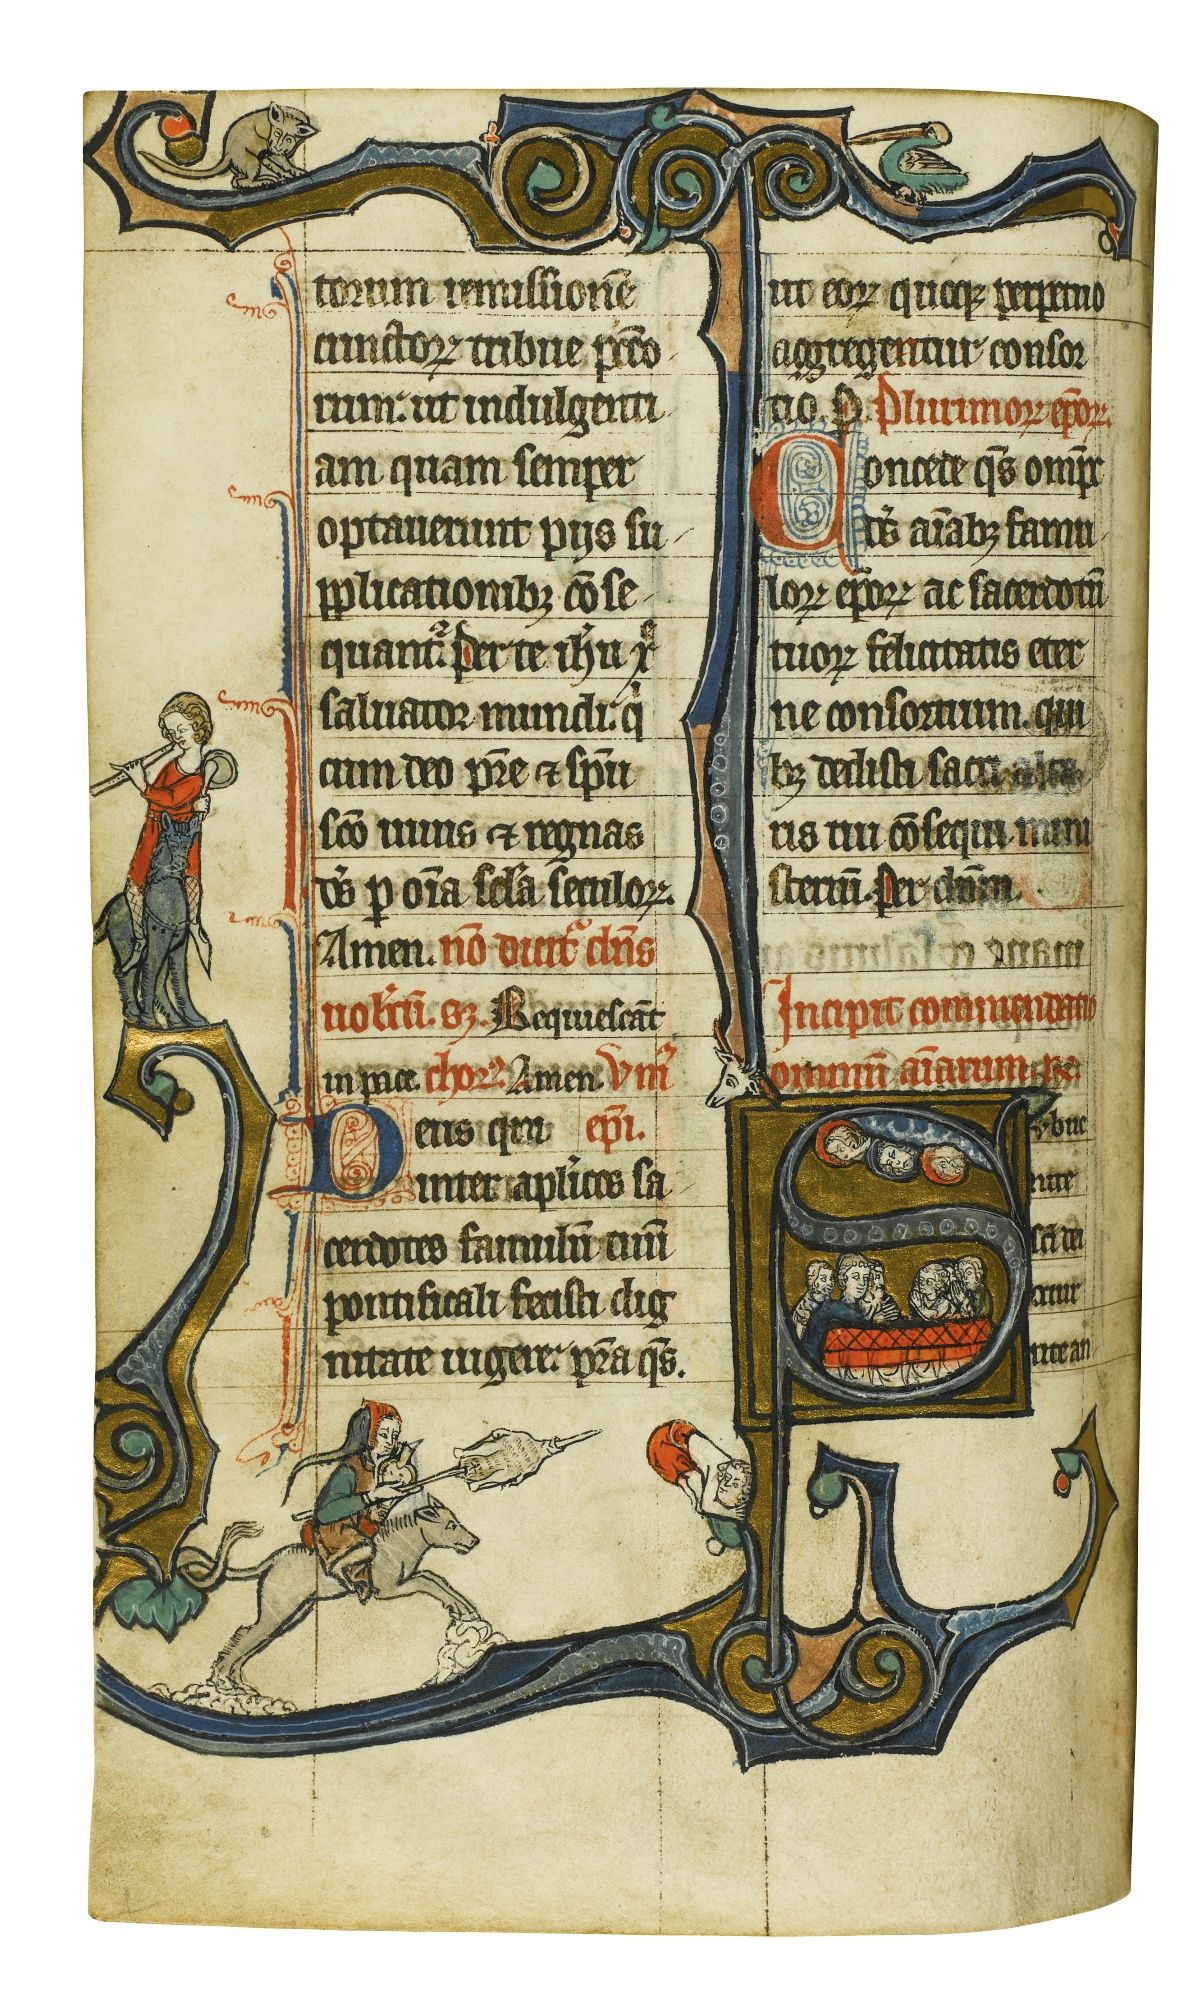 Ferial Psalter and Offices, apparently Use of St-Amé, Douai, in Latin [France (Arras), late 13th century] | lot | Sotheby's